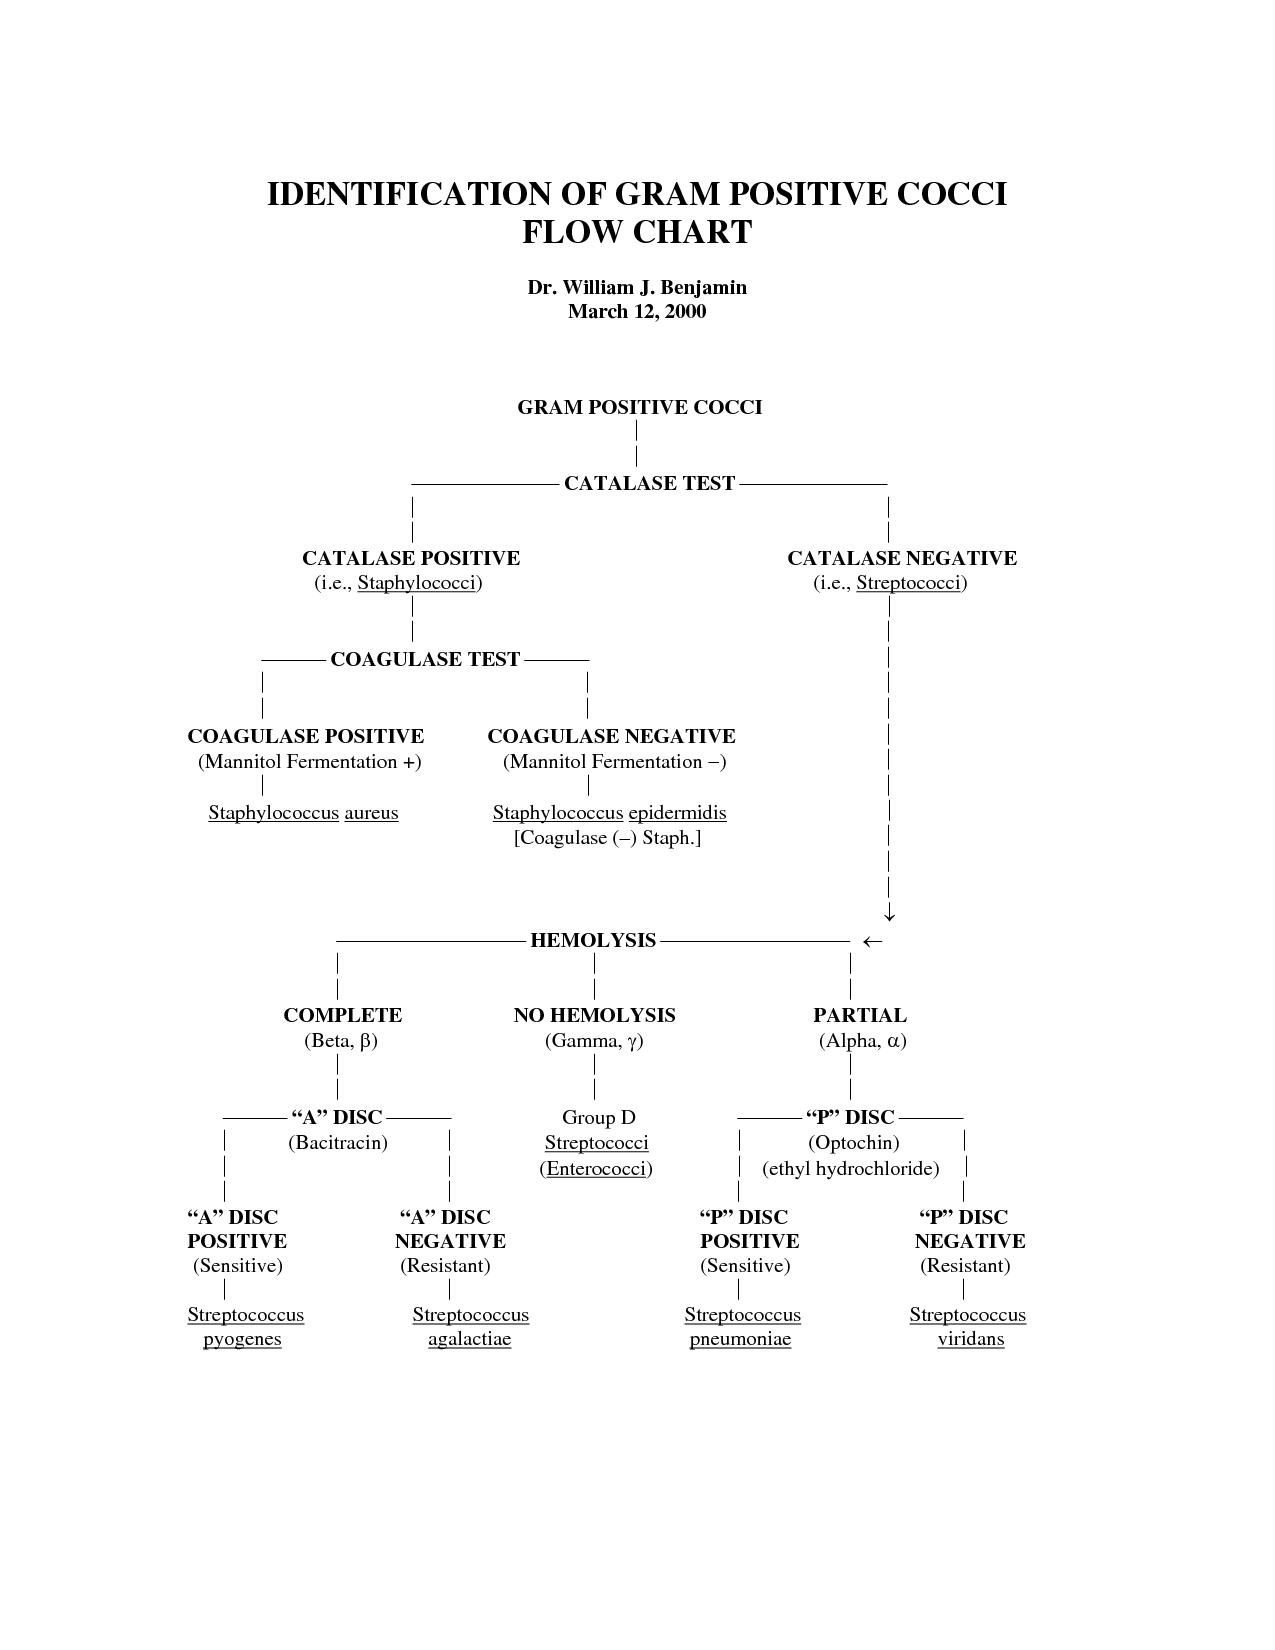 gram negative bacilli flowchart | IDENTIFICATION OF GRAM POSITIVE ...